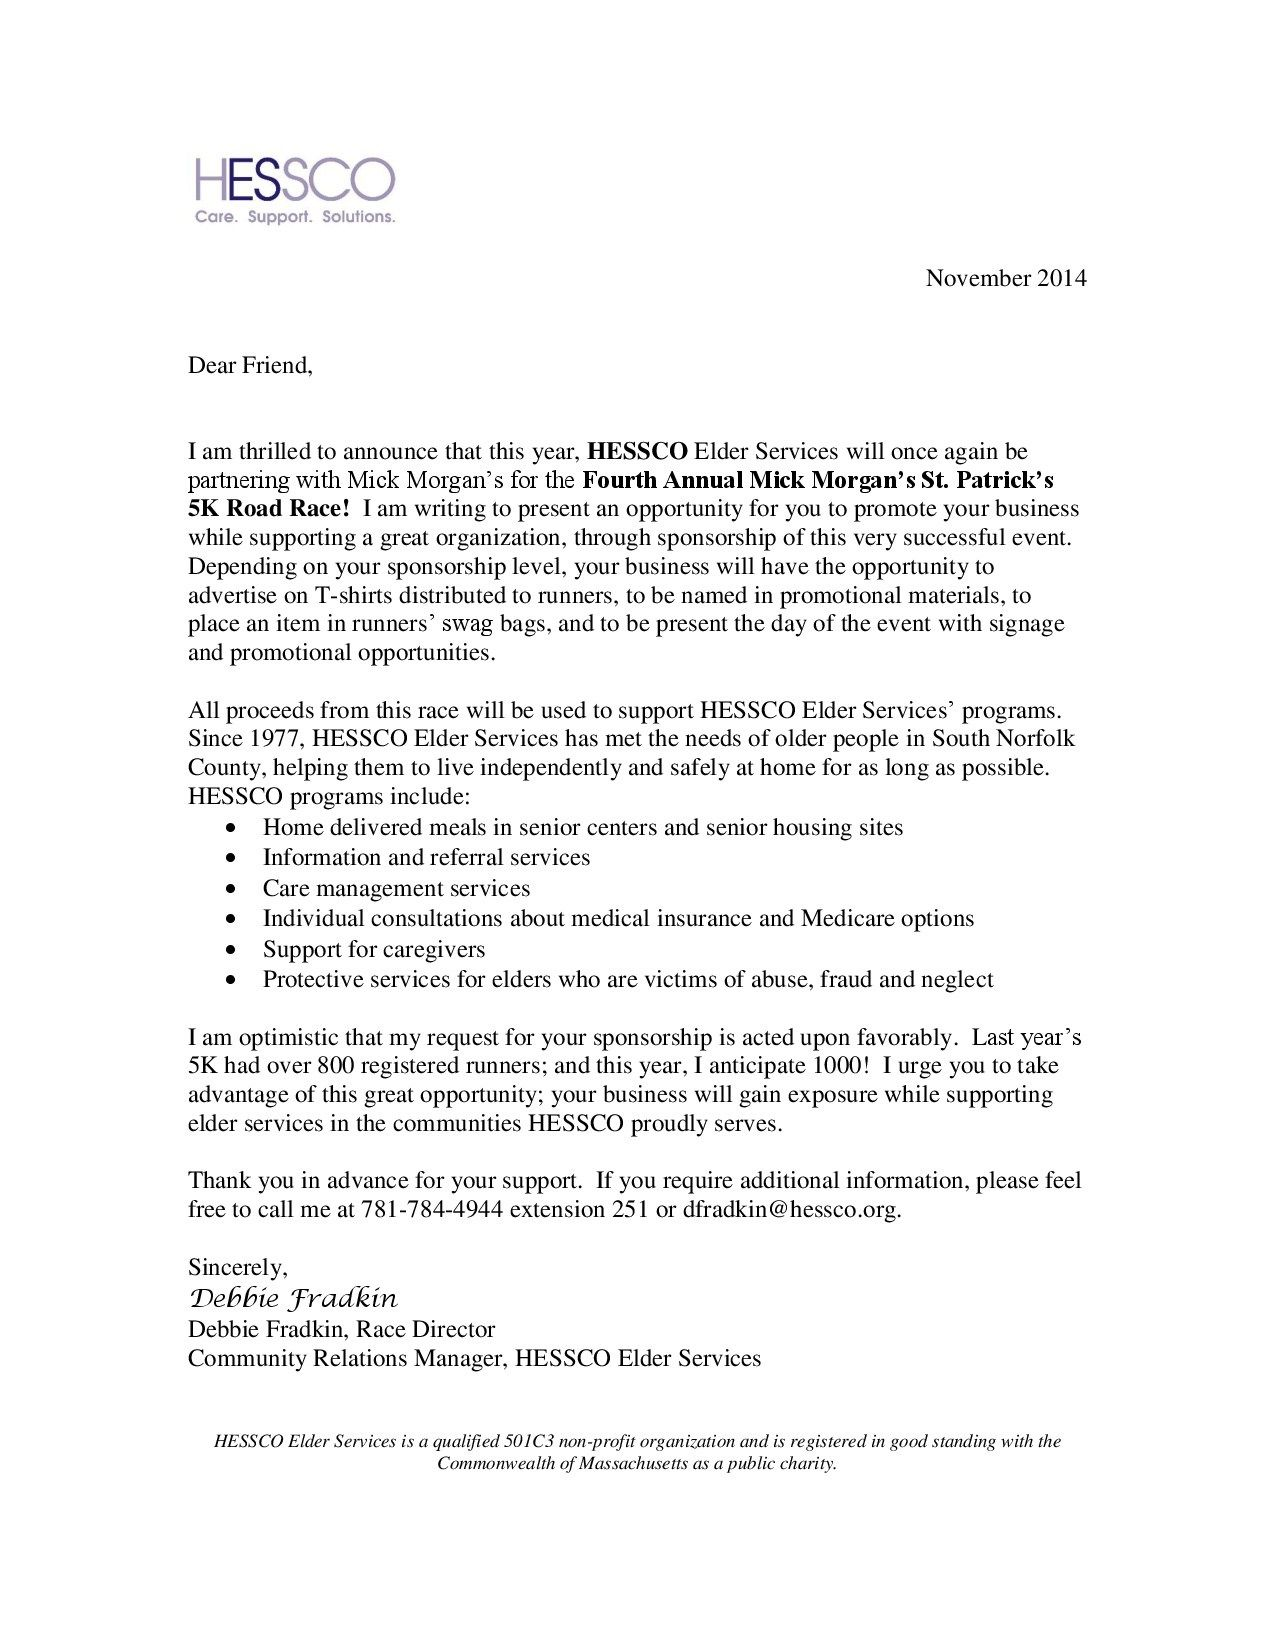 sponsorship for employment status cover letter sample job